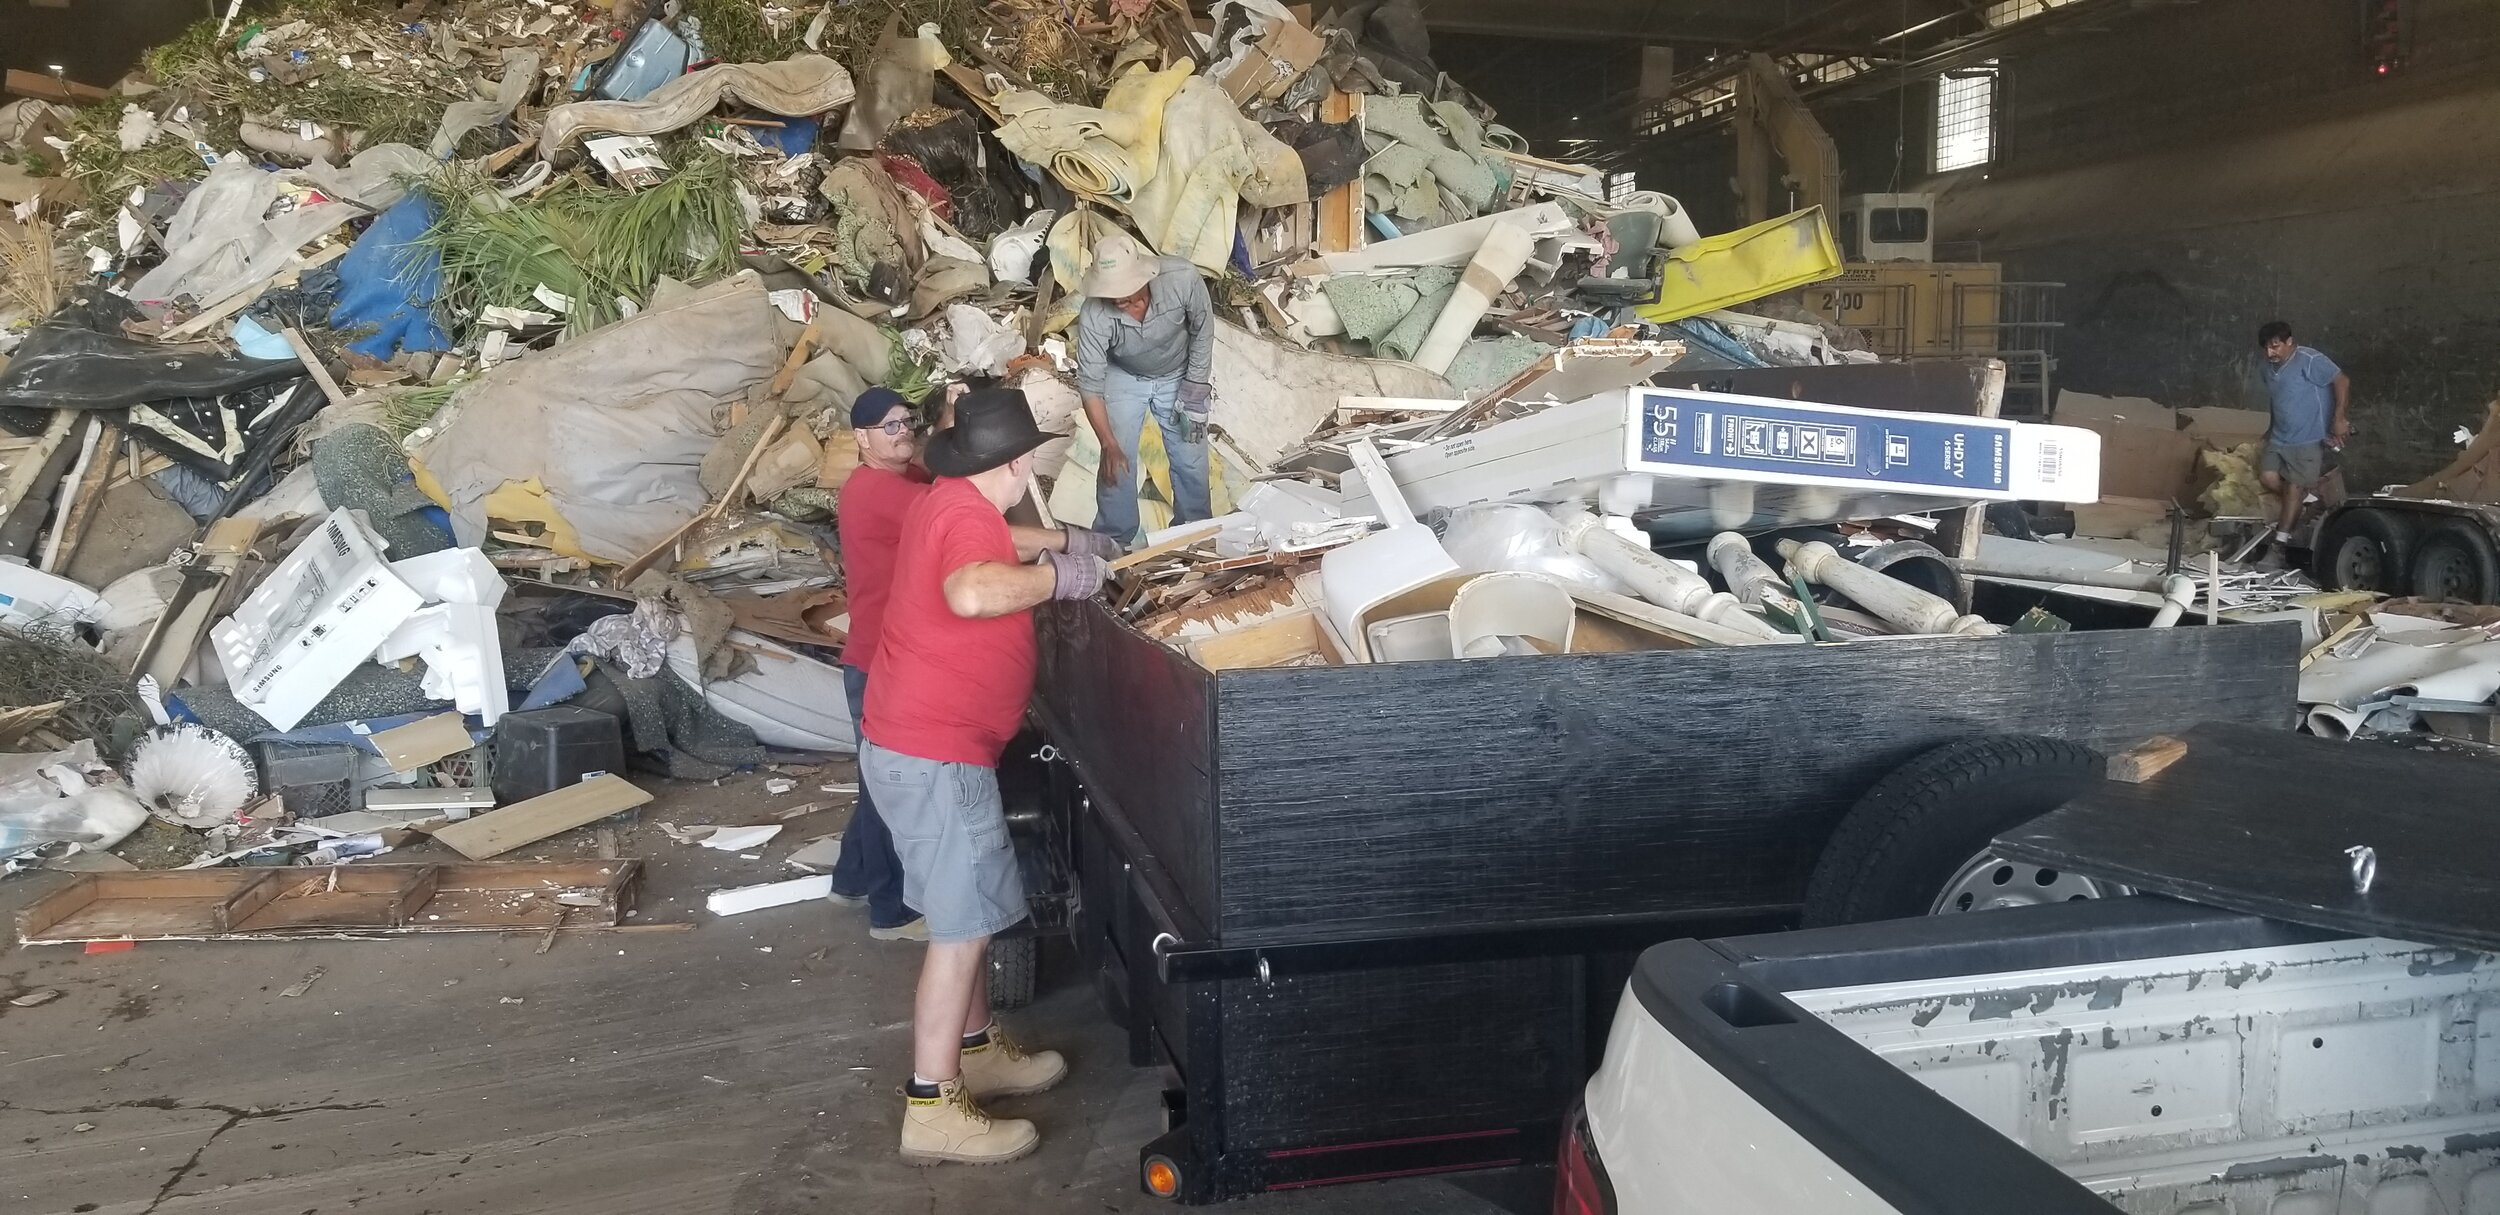 Dean from SBC volunteers to take every single trash load to the dump. Thank you Dean!